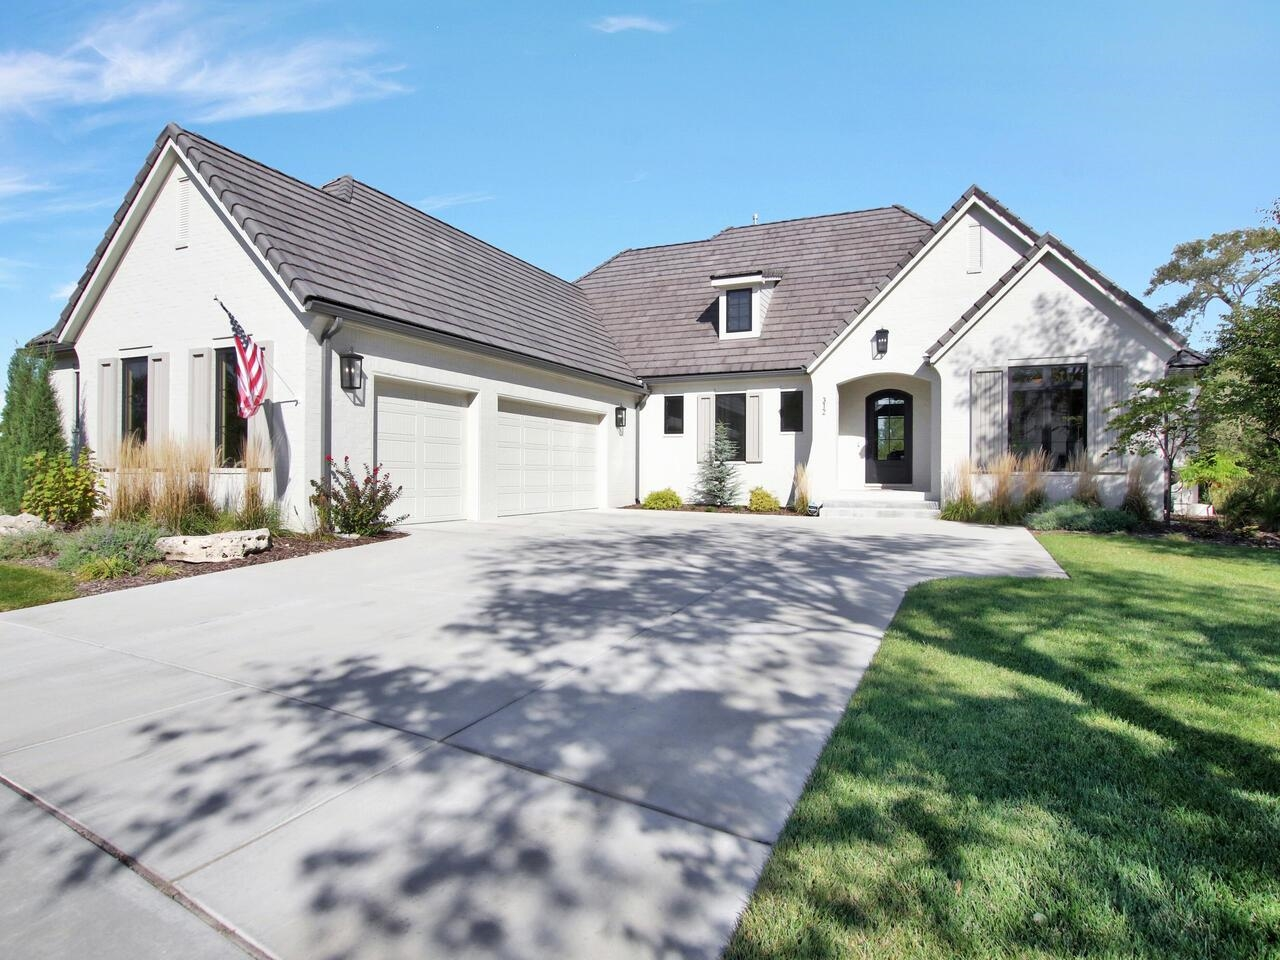 This spectacular, nearly new Nies built home is located on a quiet cul-de-sac in scenic Flint Hills